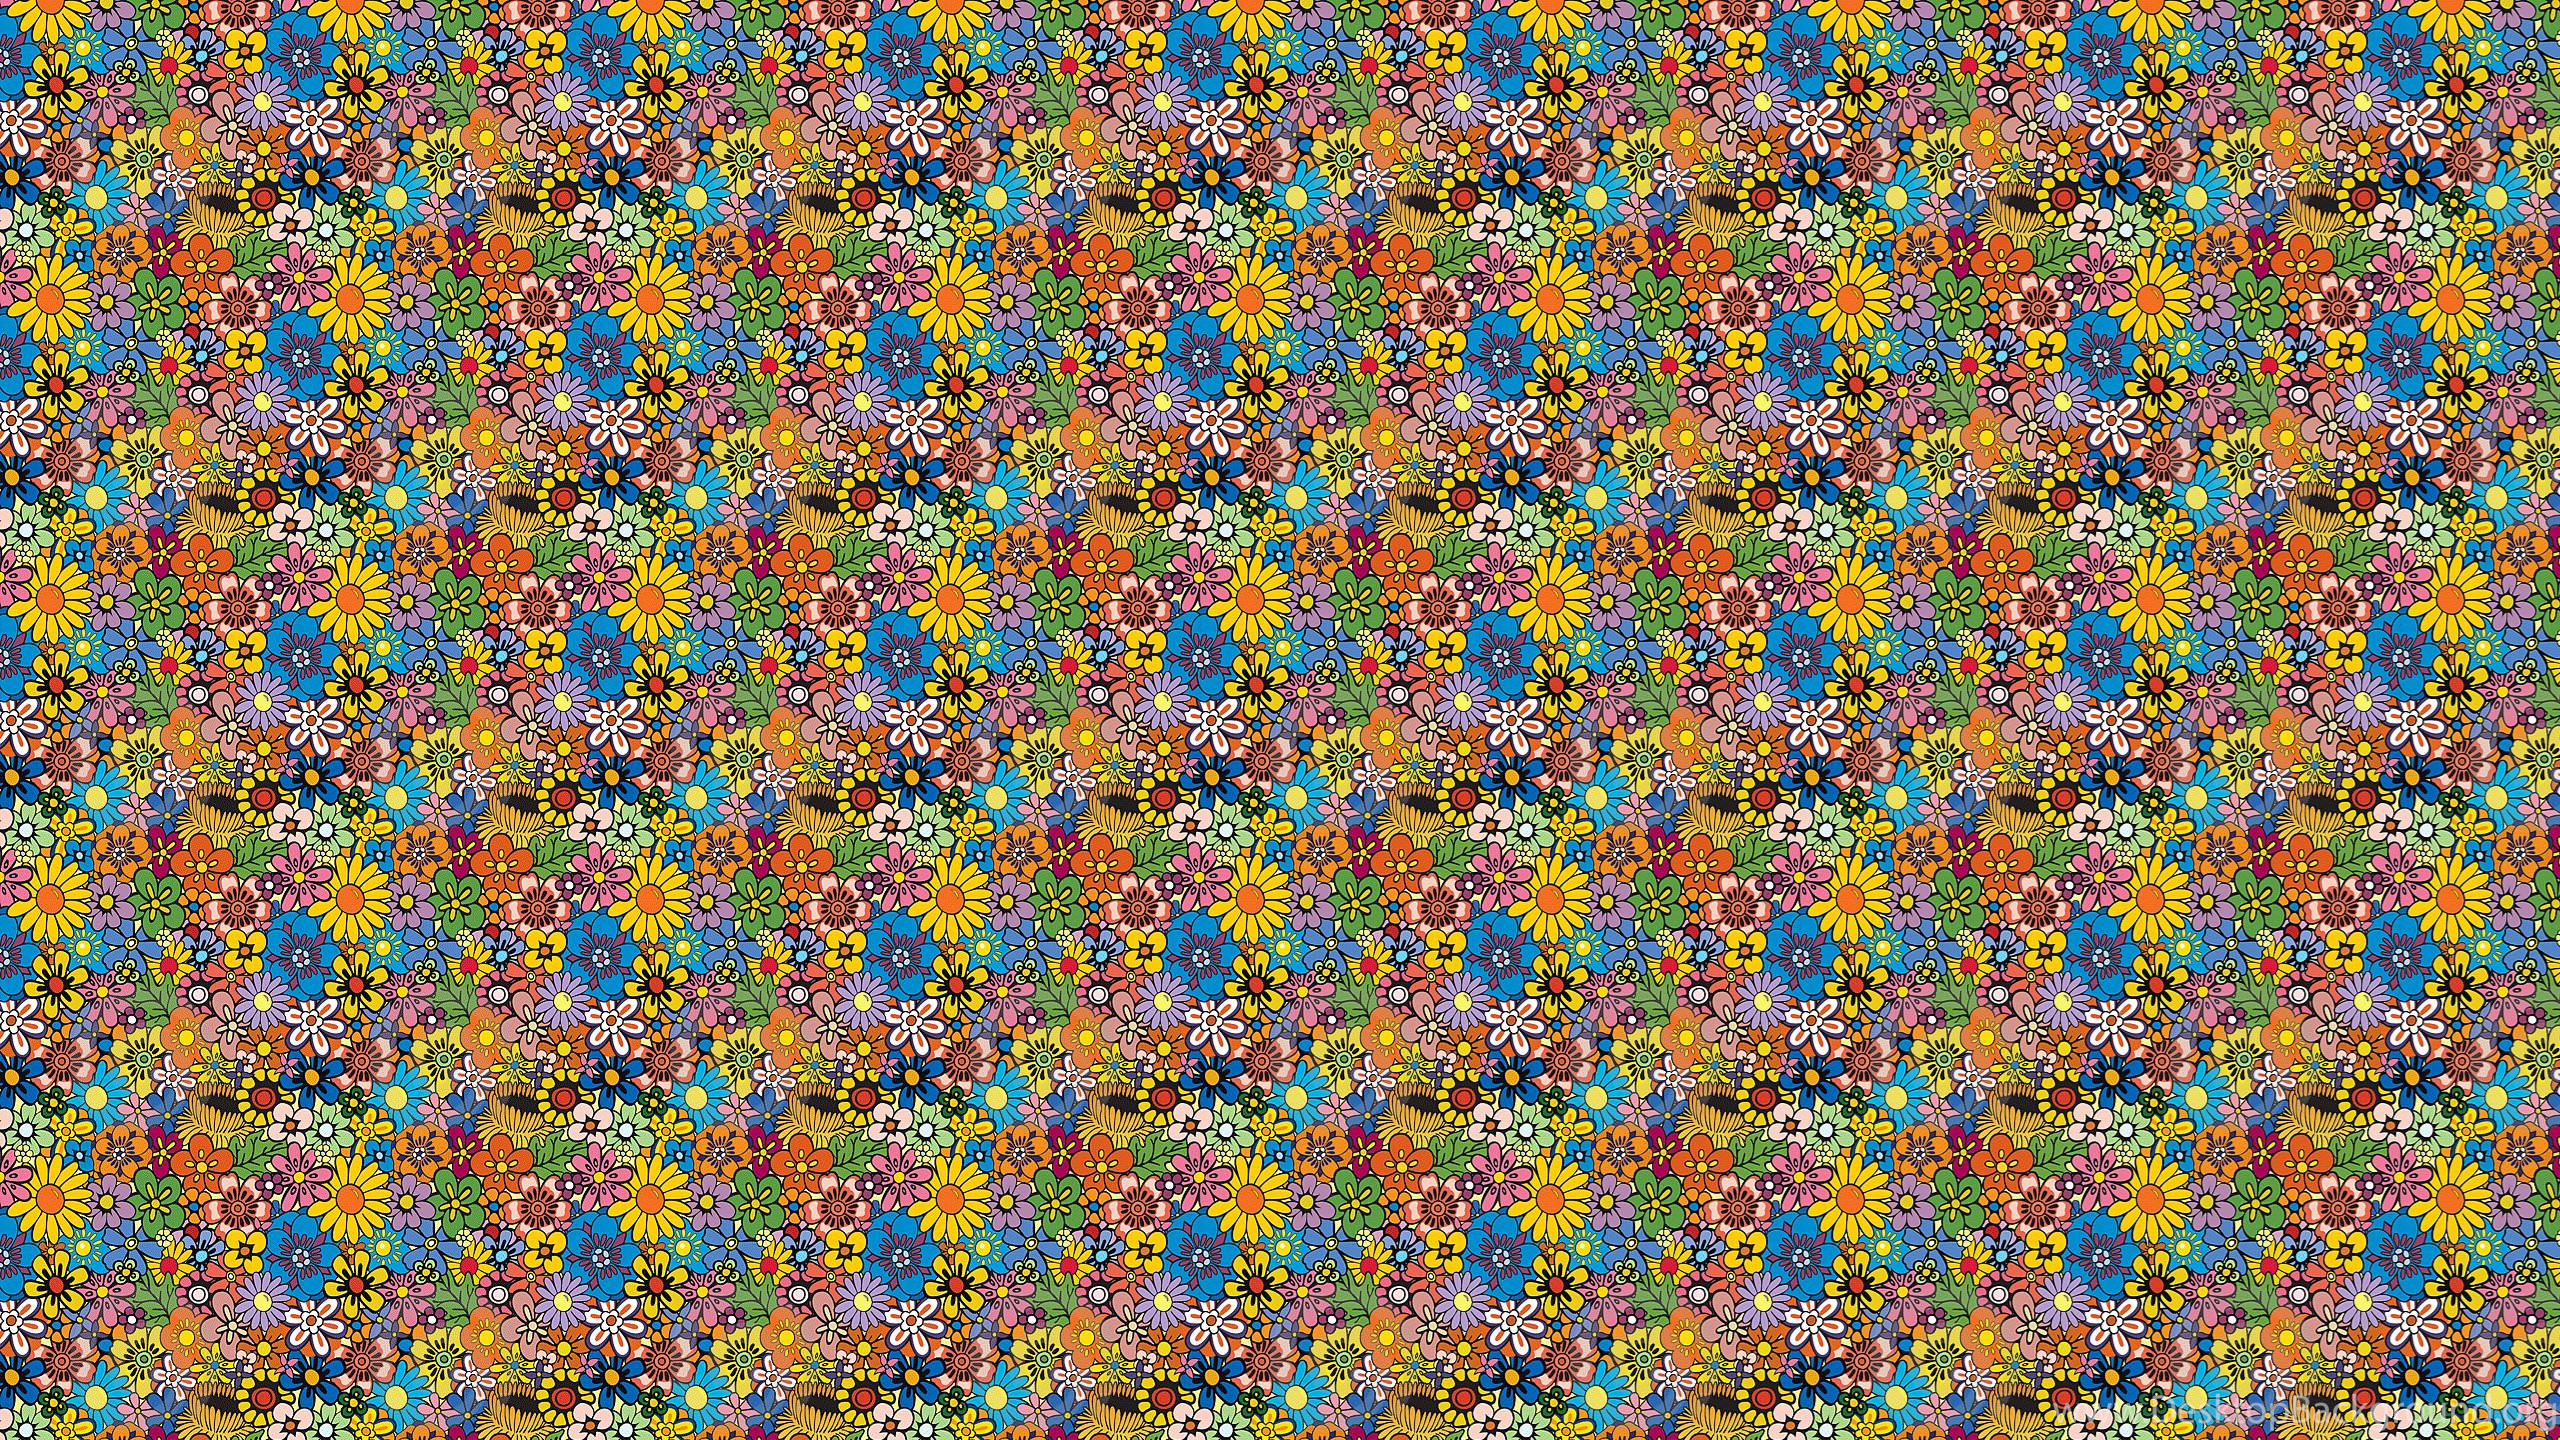 2560x1440 Flowers From Hippies Desktop Wallpapers